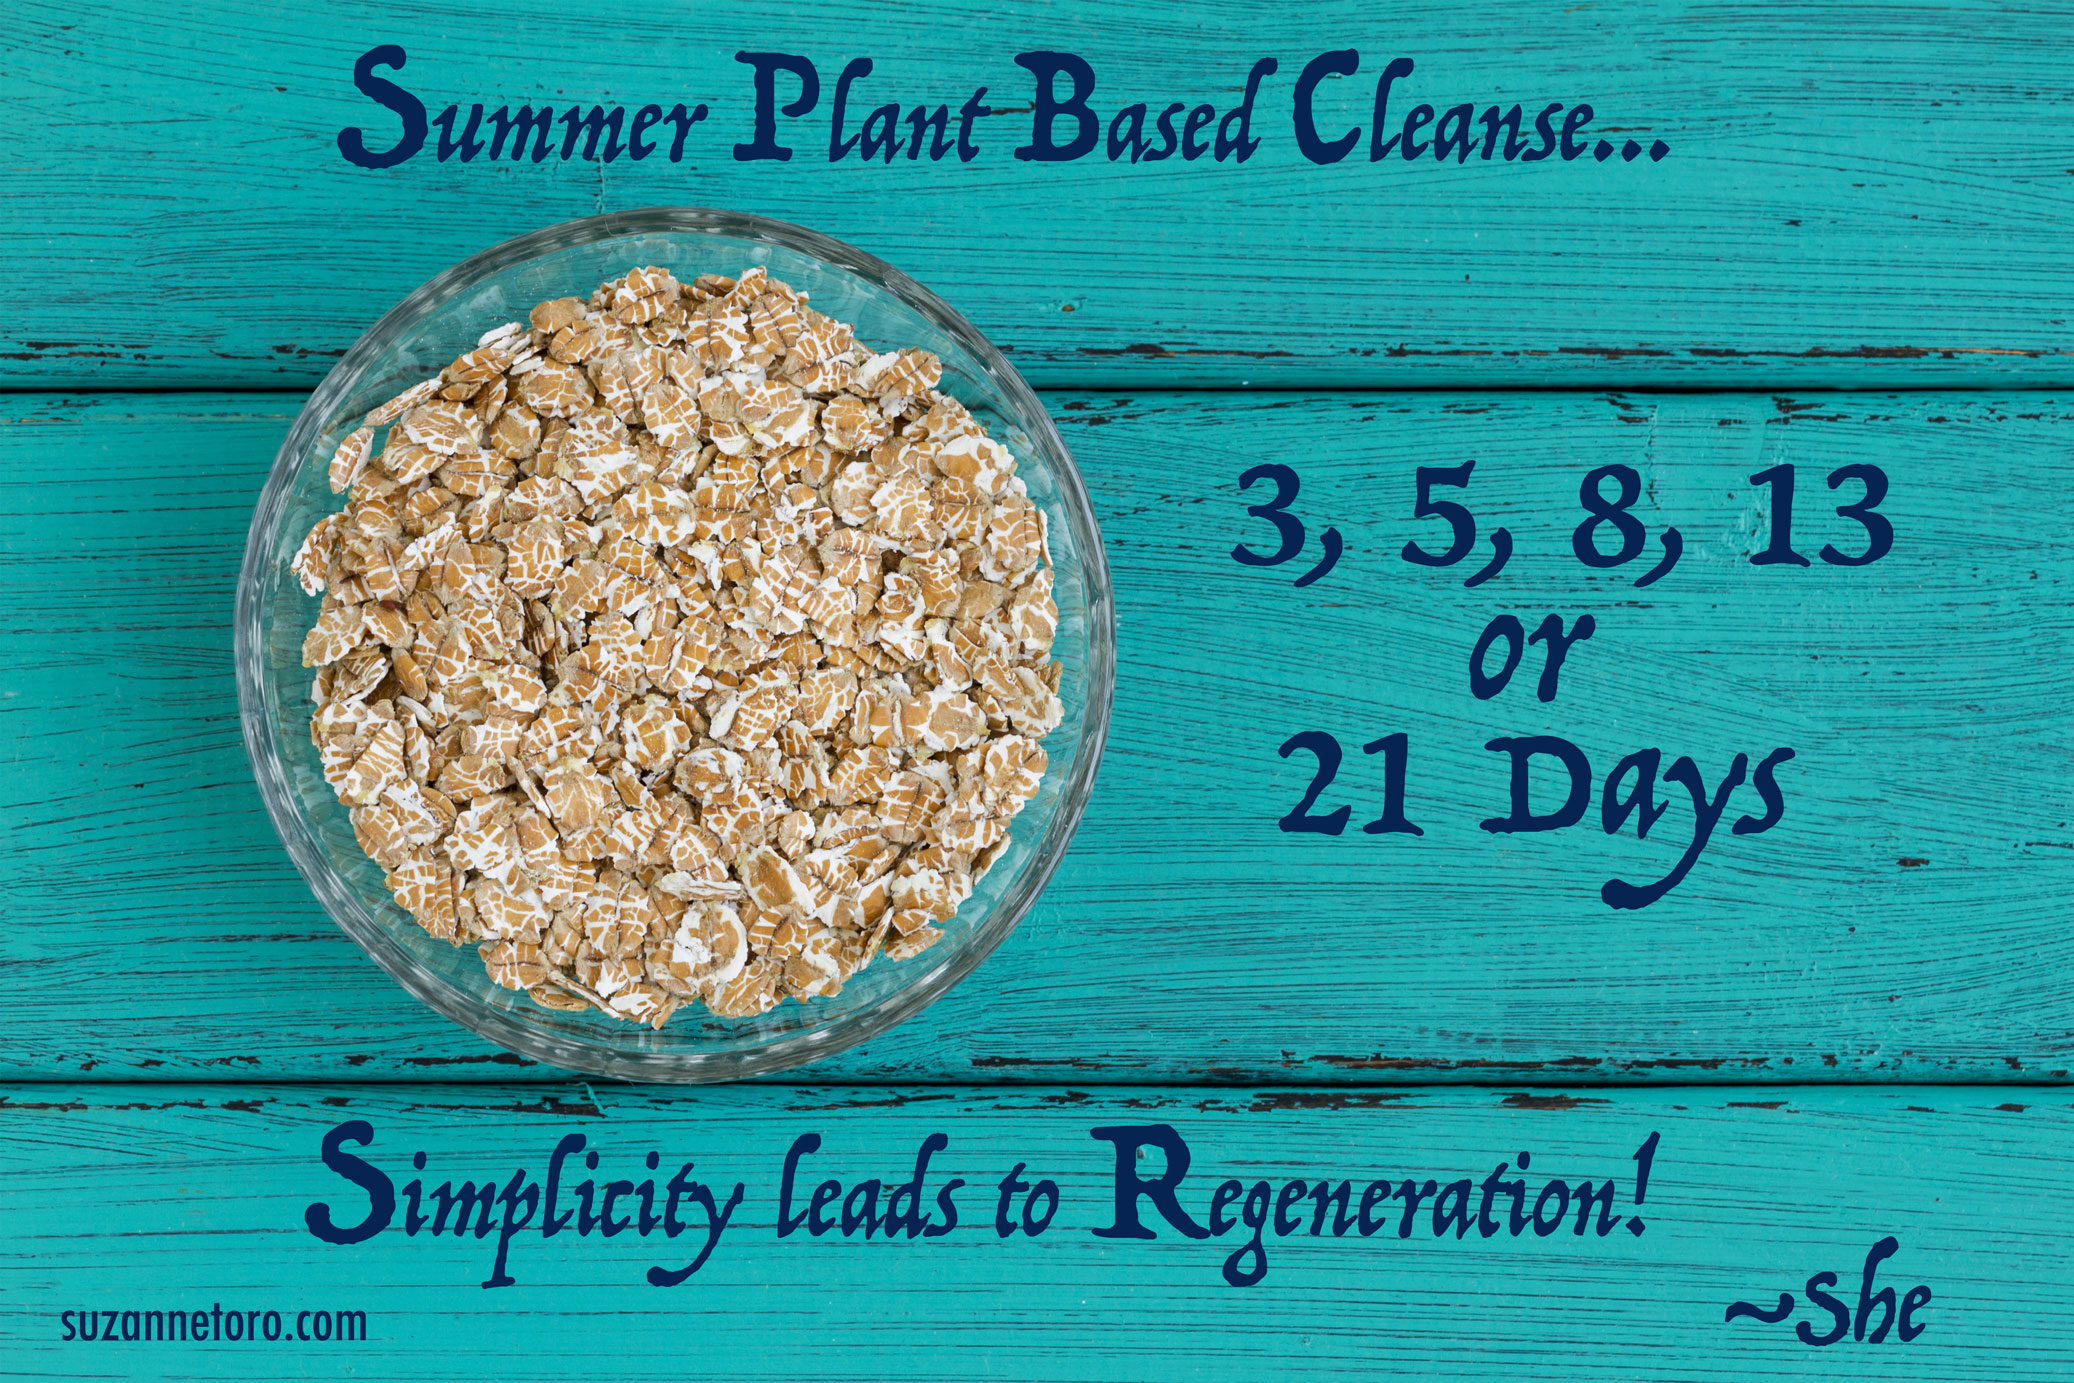 plant based cleanse summer